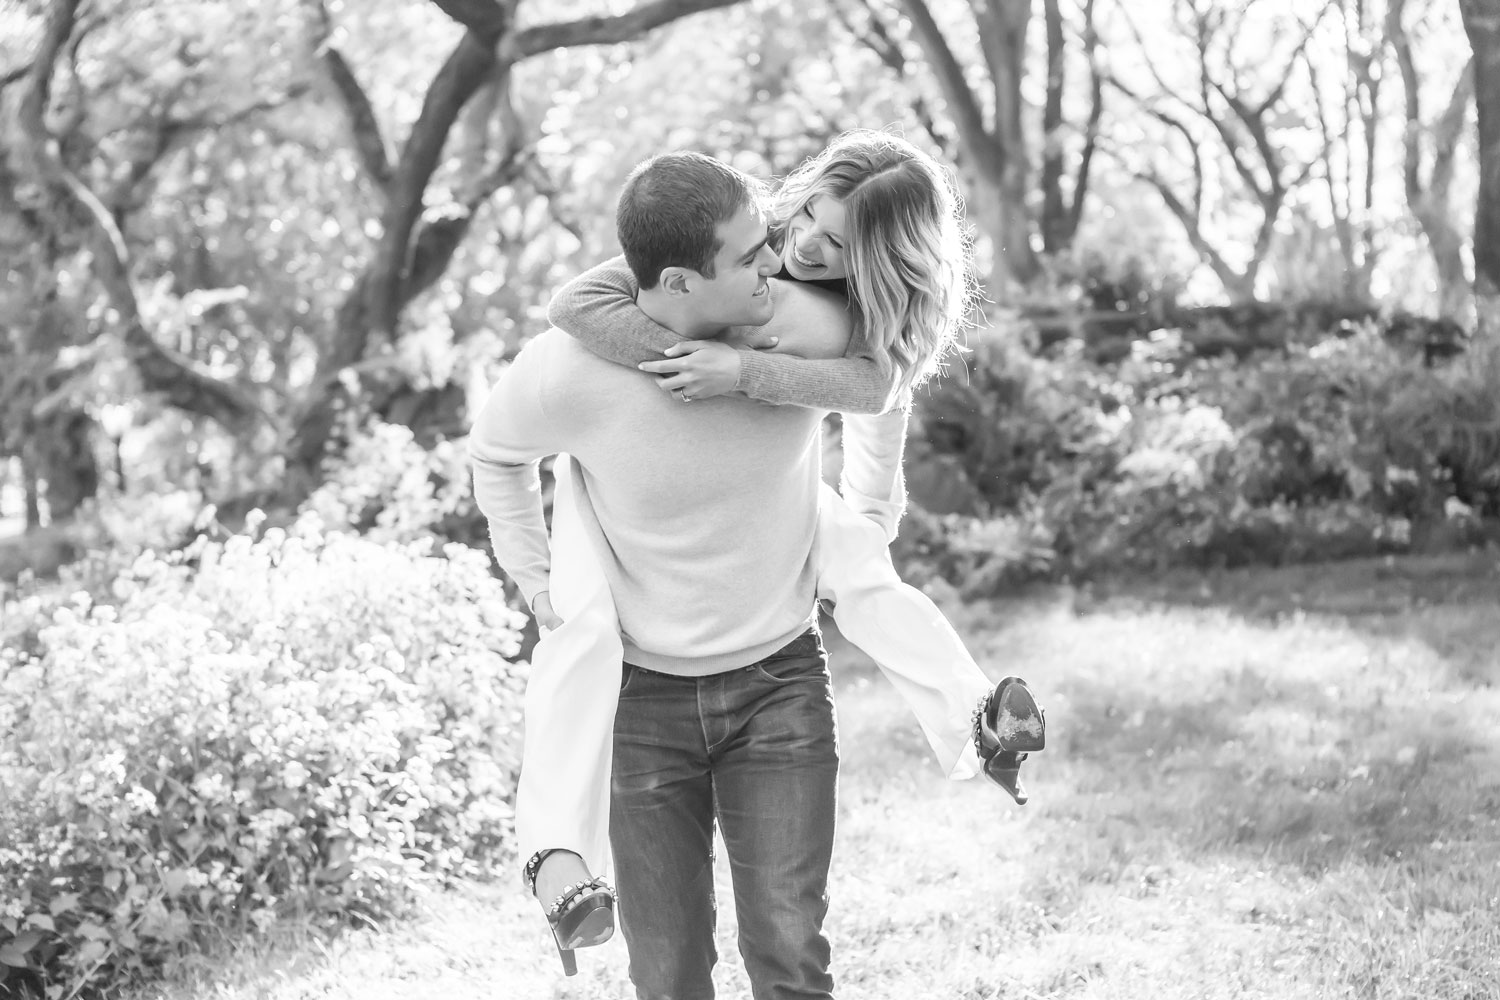 engagement shoot ideas black and white photo piggyback central park e-session